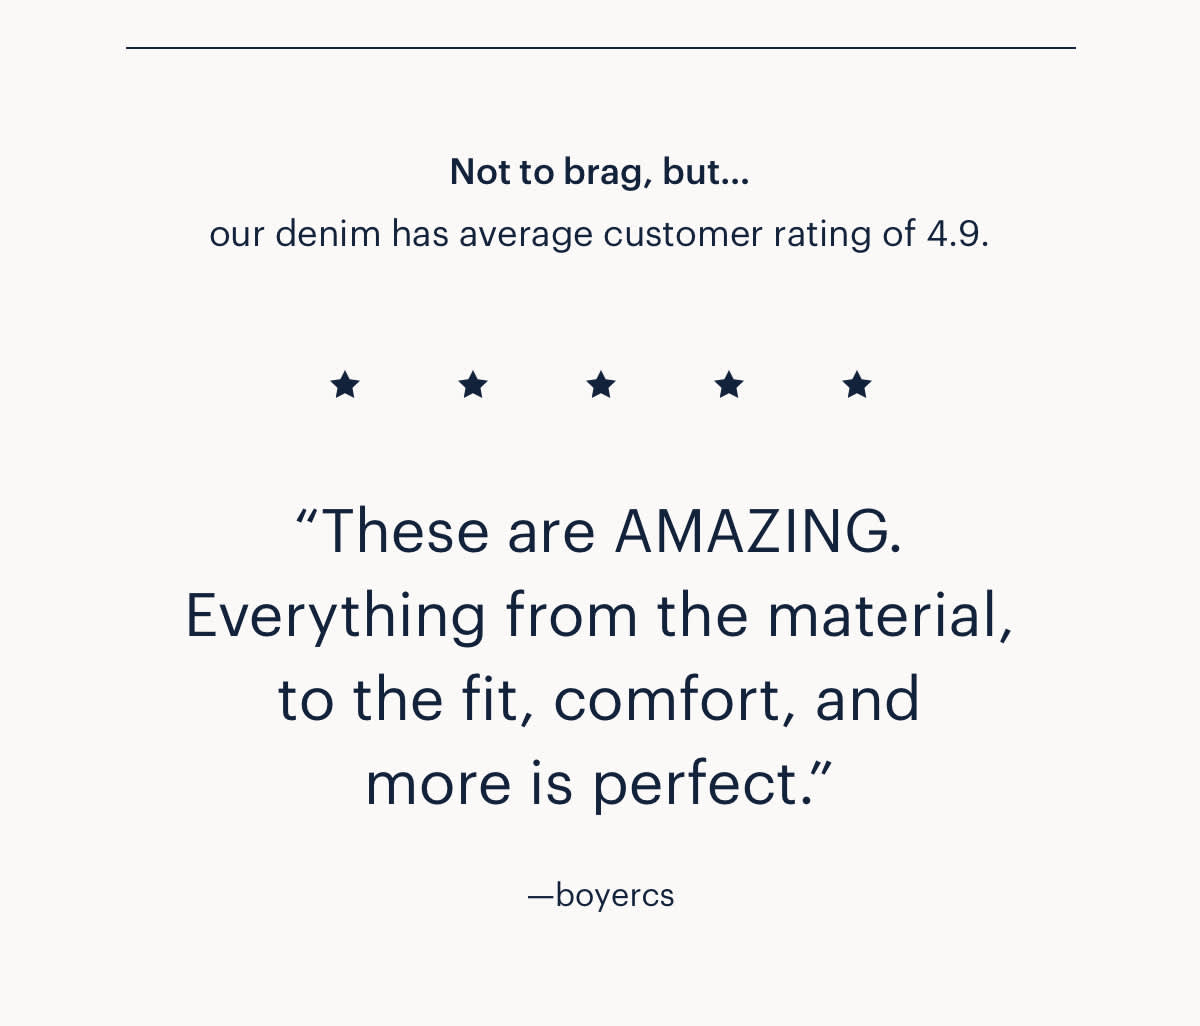 Not to brag, but...our denim has average customer rating of 4.9.